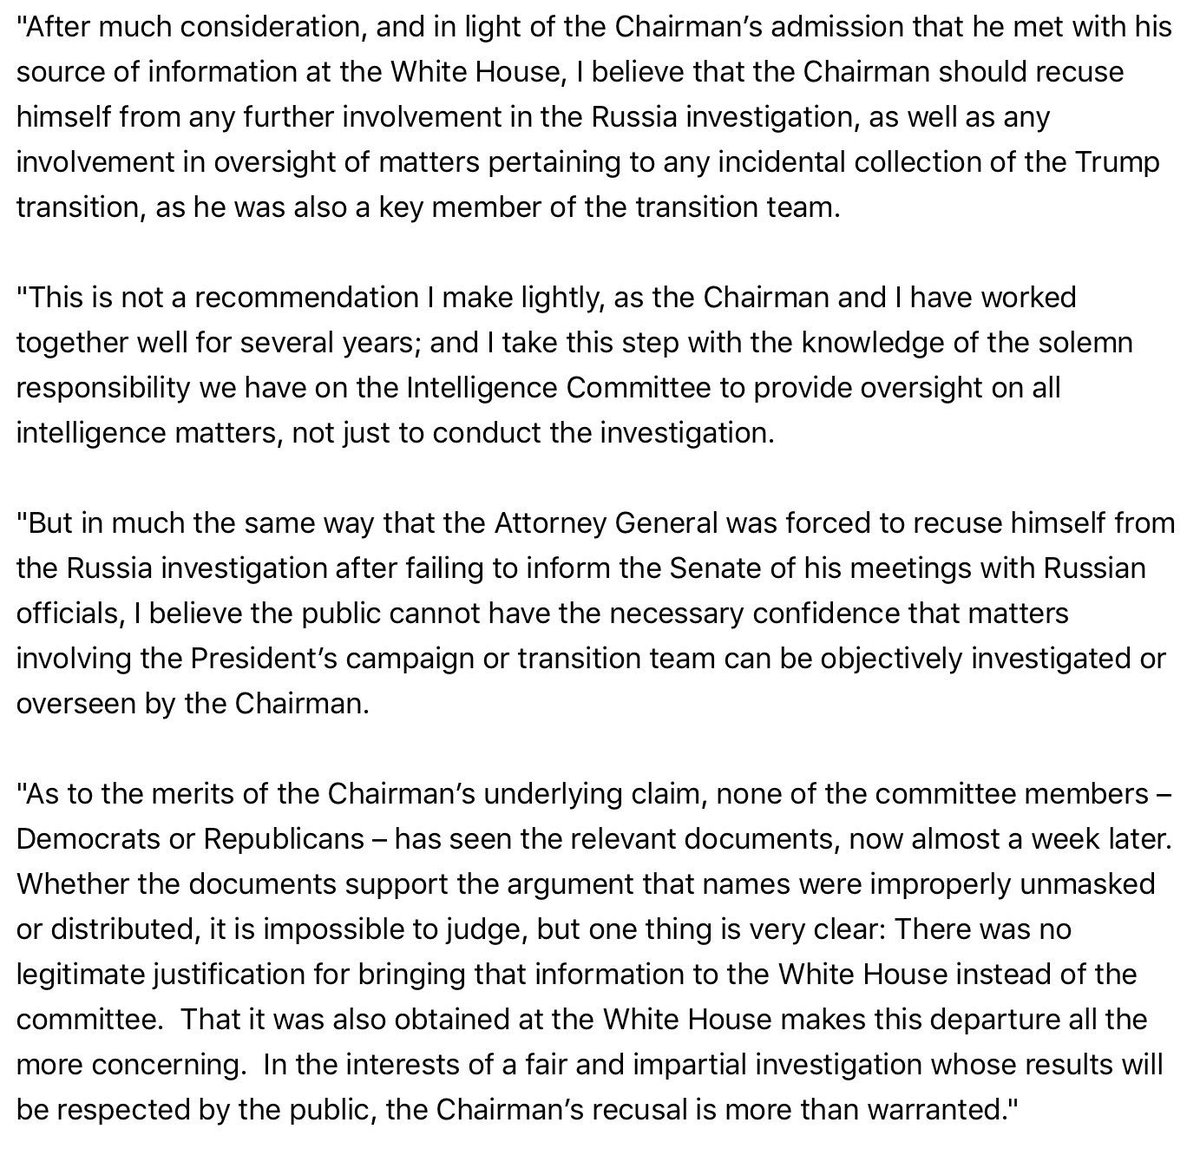 After much consideration I believe Chairman should recuse himself from involvement in investigation/oversight of Trump campaign & transition